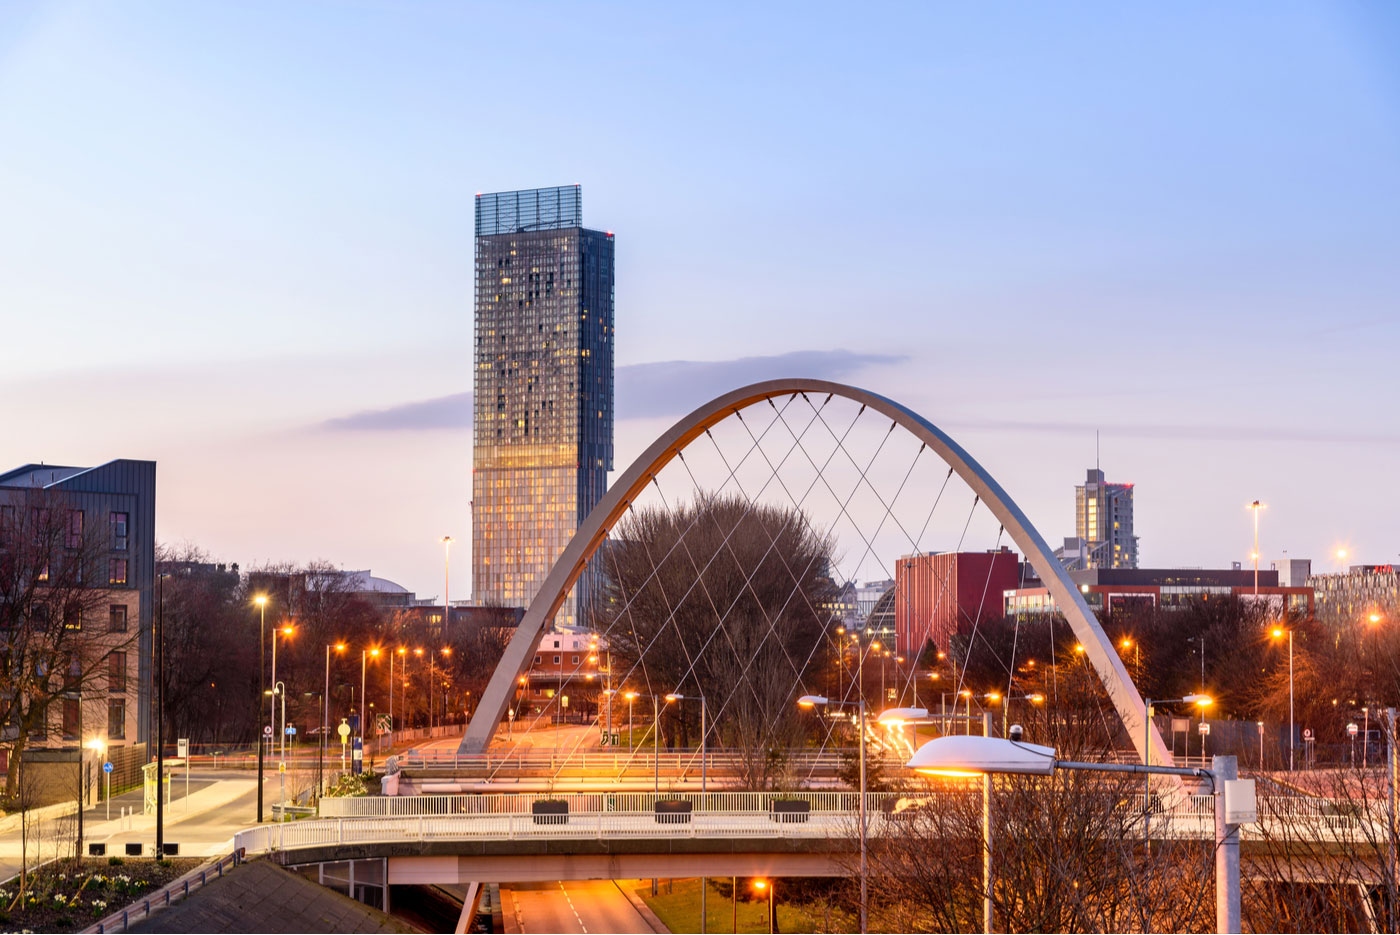 Die Hulme Arch Bridge in Manchester mit Skyline